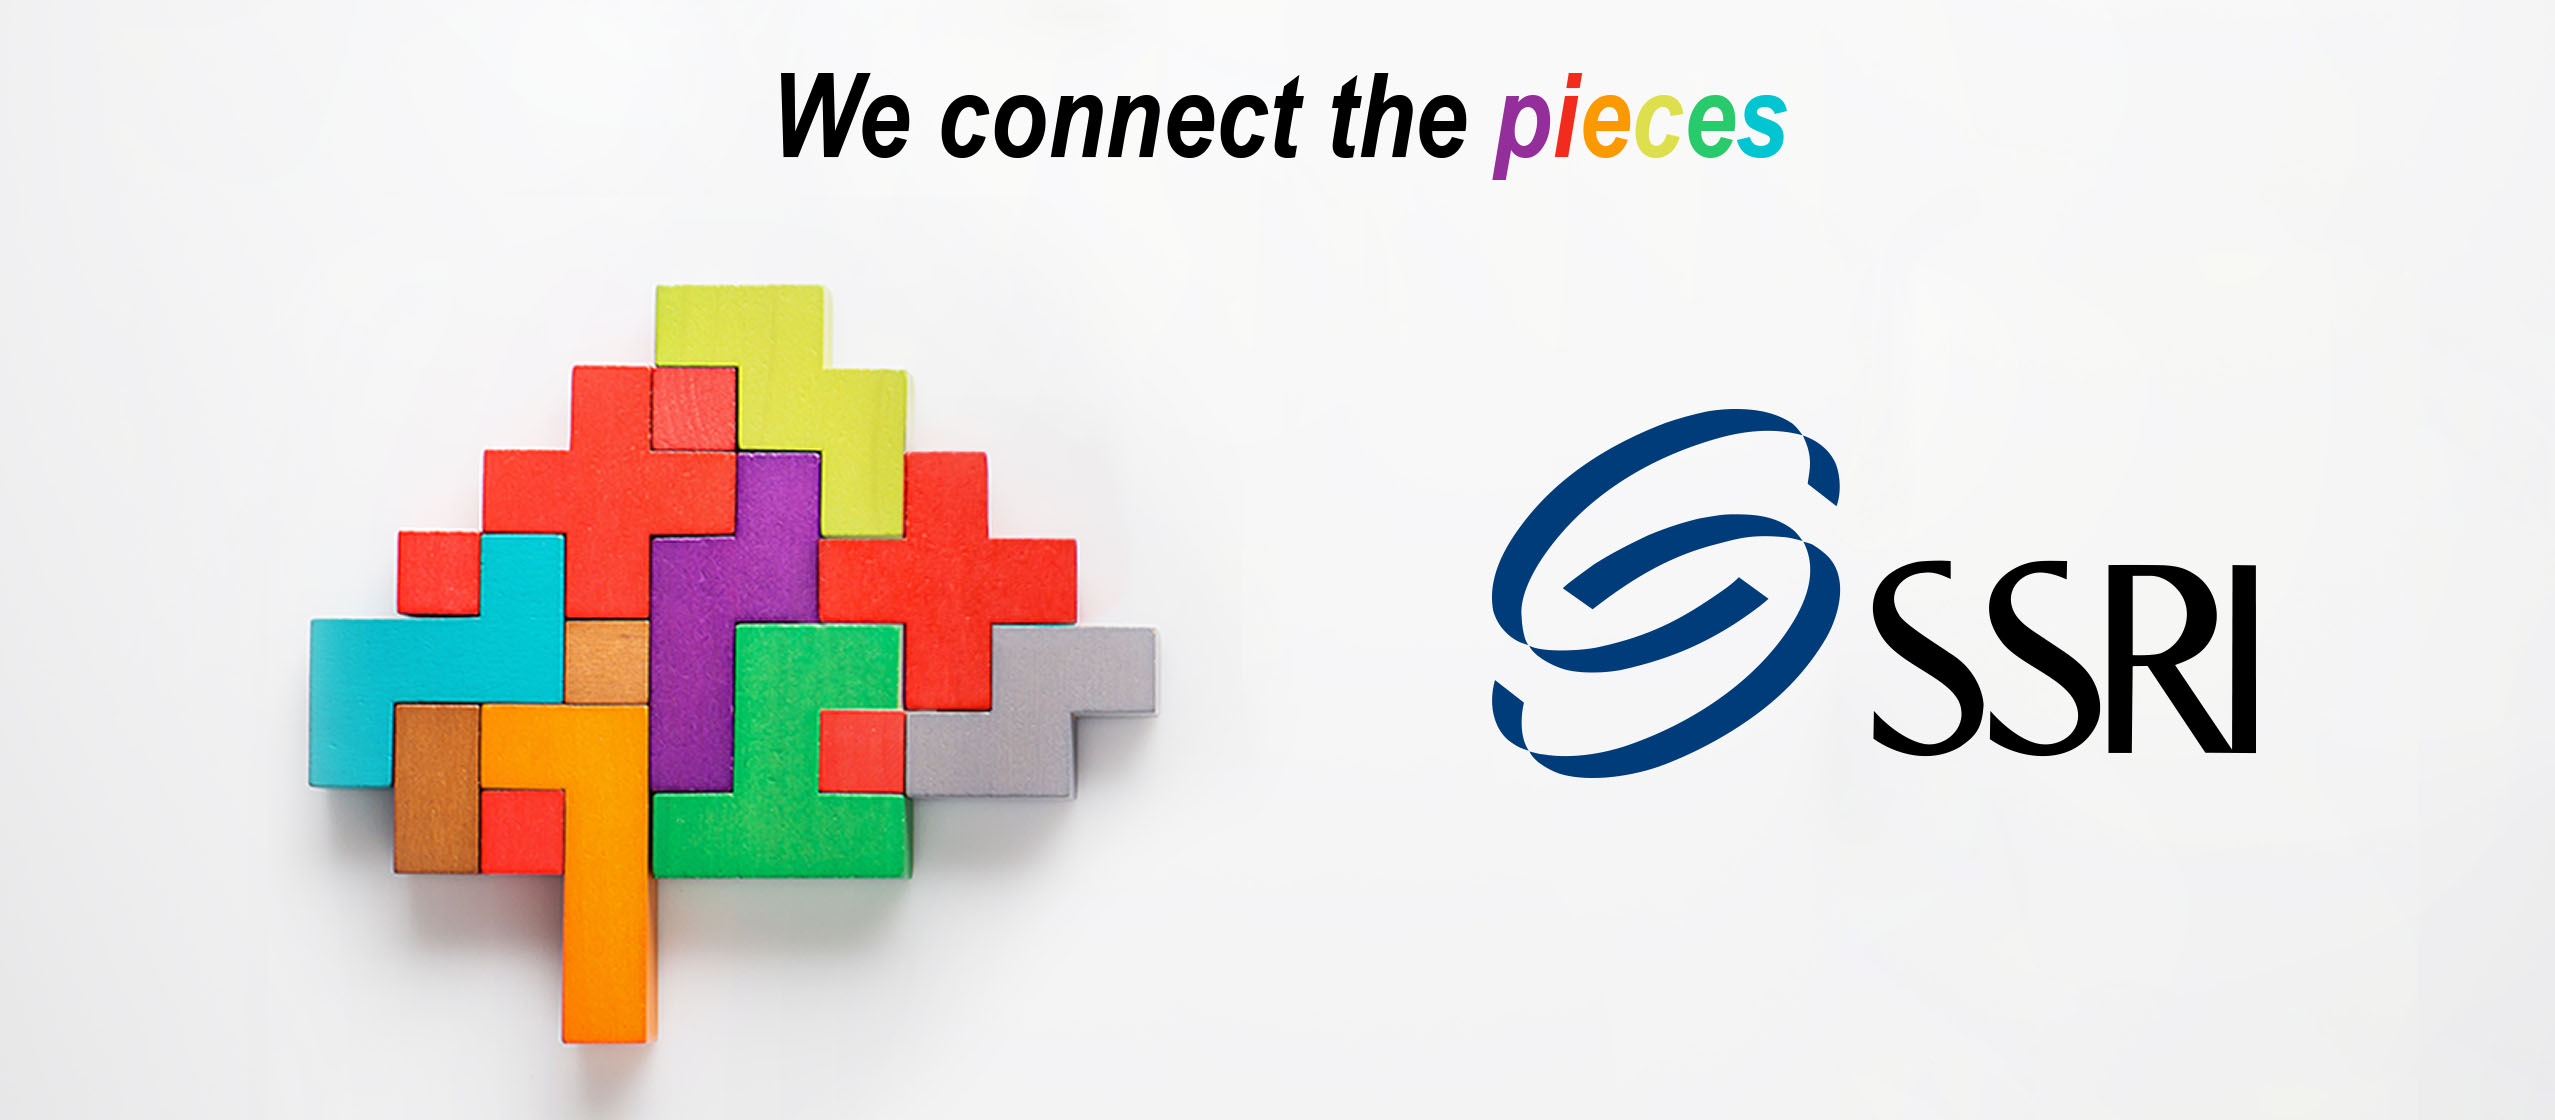 We connect the pieces